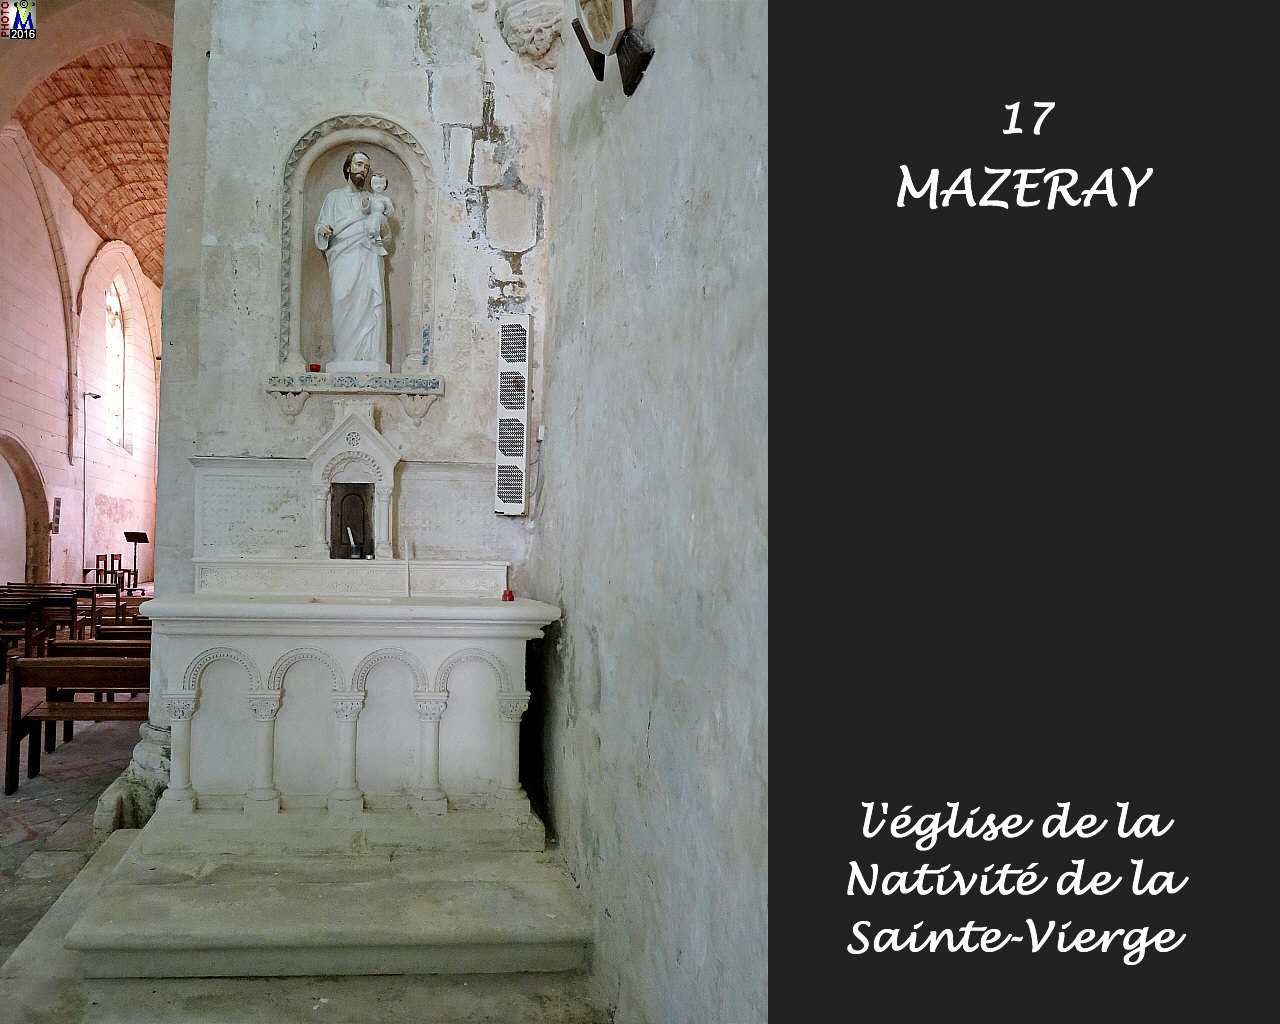 17MAZERAY_eglise_1122.jpg